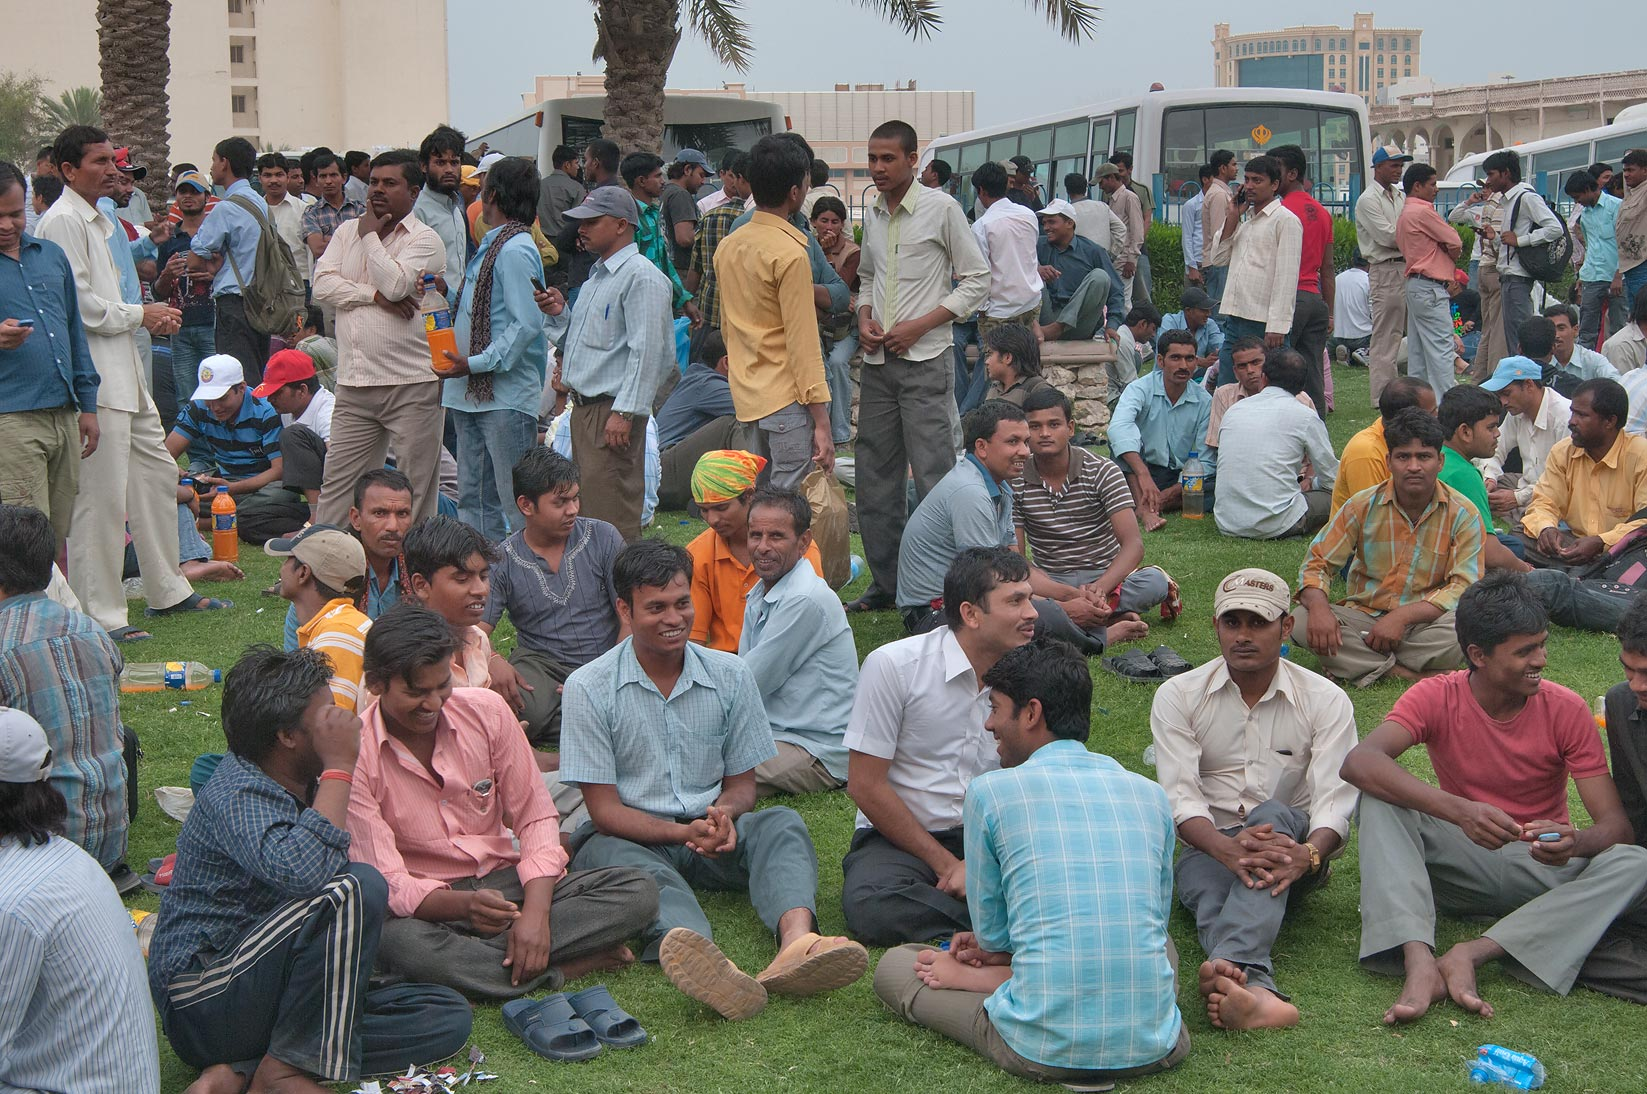 Workers sitting and standing on a lawn on Friday...Bus Station Al Ghanim. Doha, Qatar